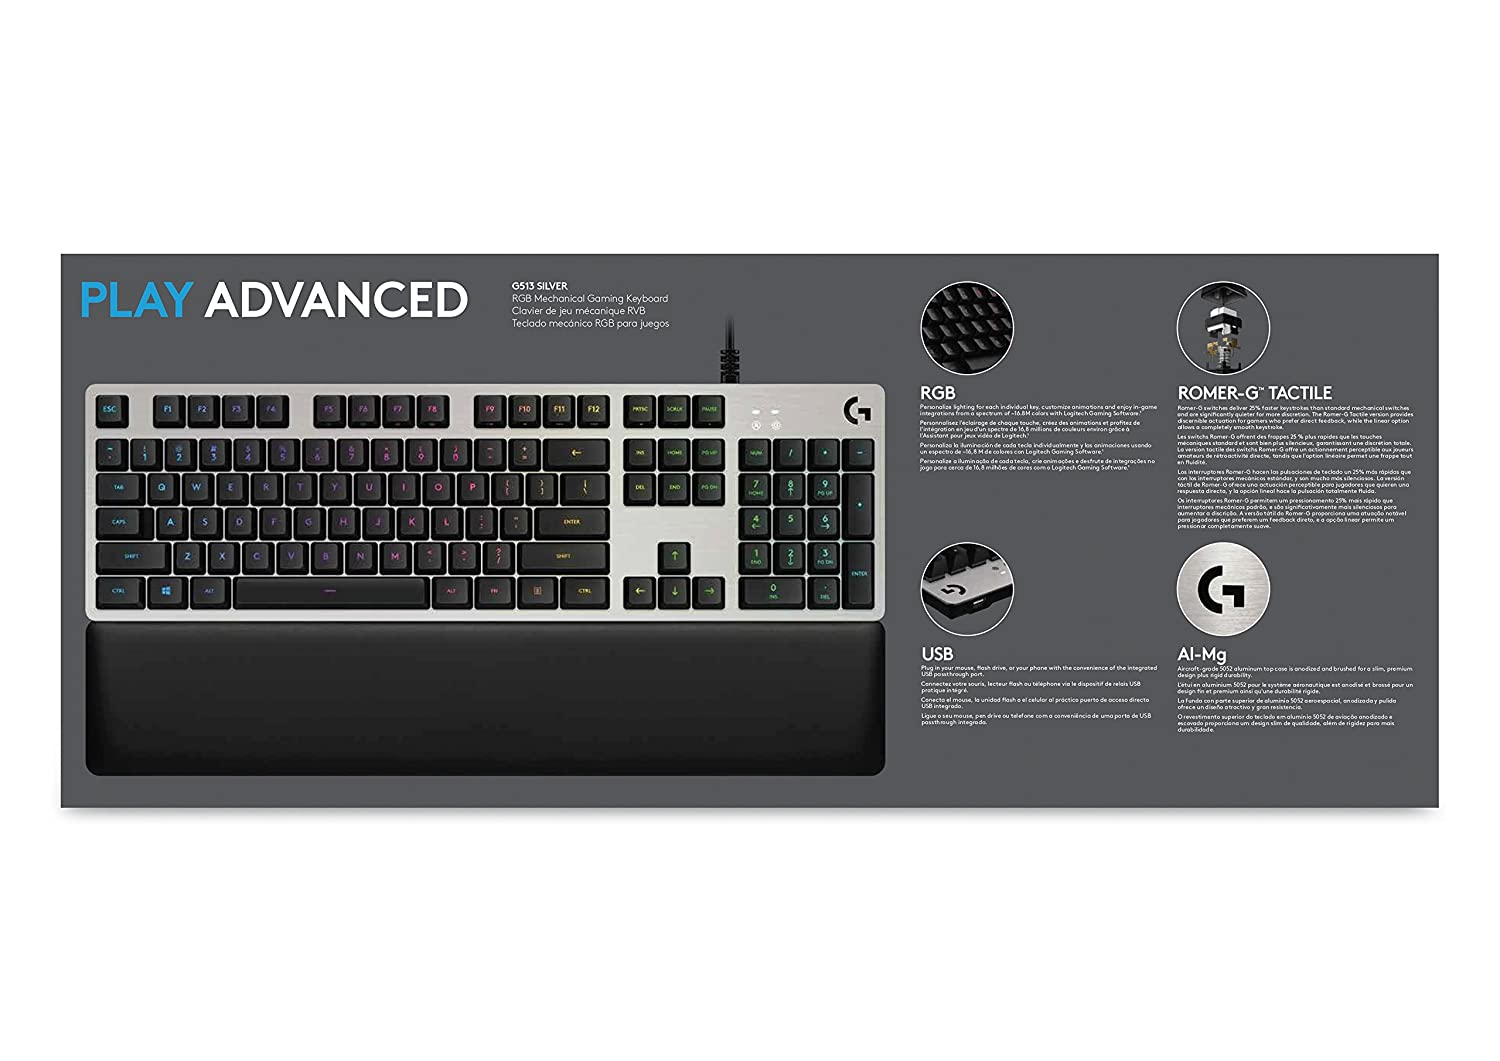 Amazon.com: Logitech G513 Carbon RGB Mechanical Gaming Keyboard, Romer-G Tactile: Computers & Accessories